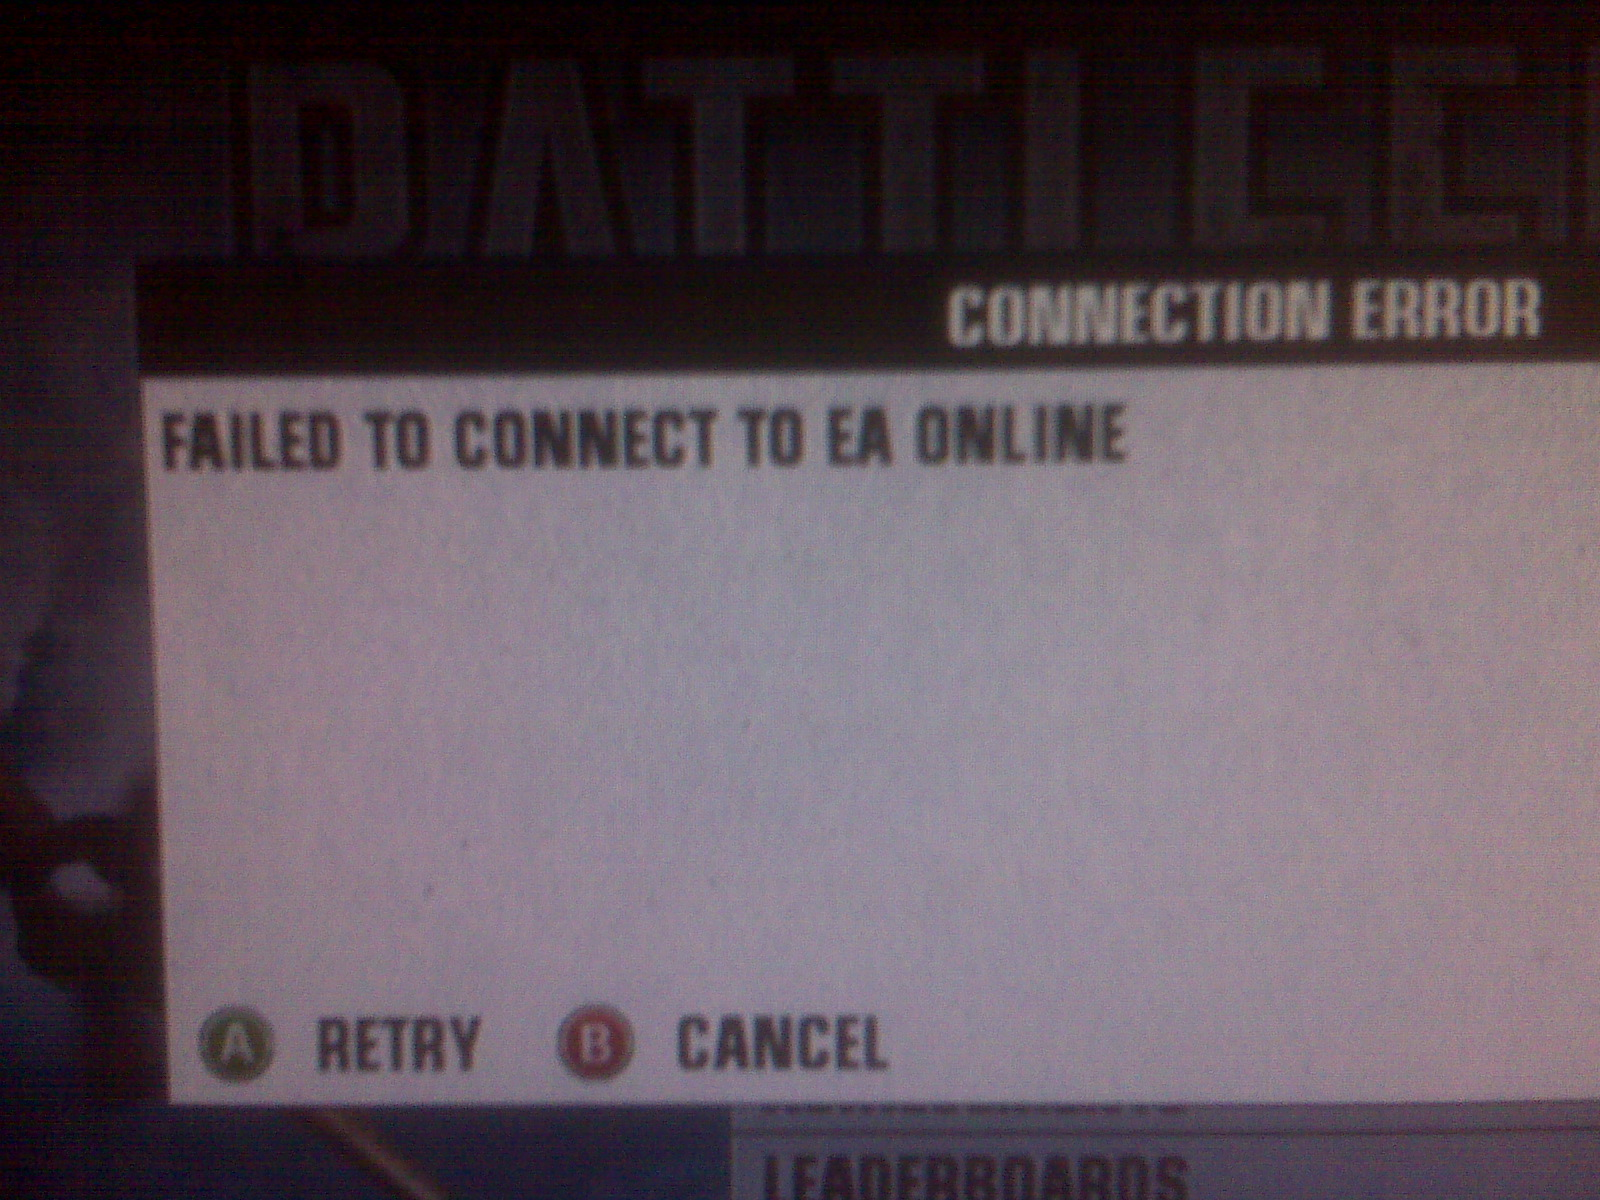 EA needs to get they're crap together and fix this. I'm sick of it. If I pay $15 for a game it darn-well better work!  -----   benpike    http://techsifter.com   -----  Sent from my Verizon Wireless BlackBerry  -----